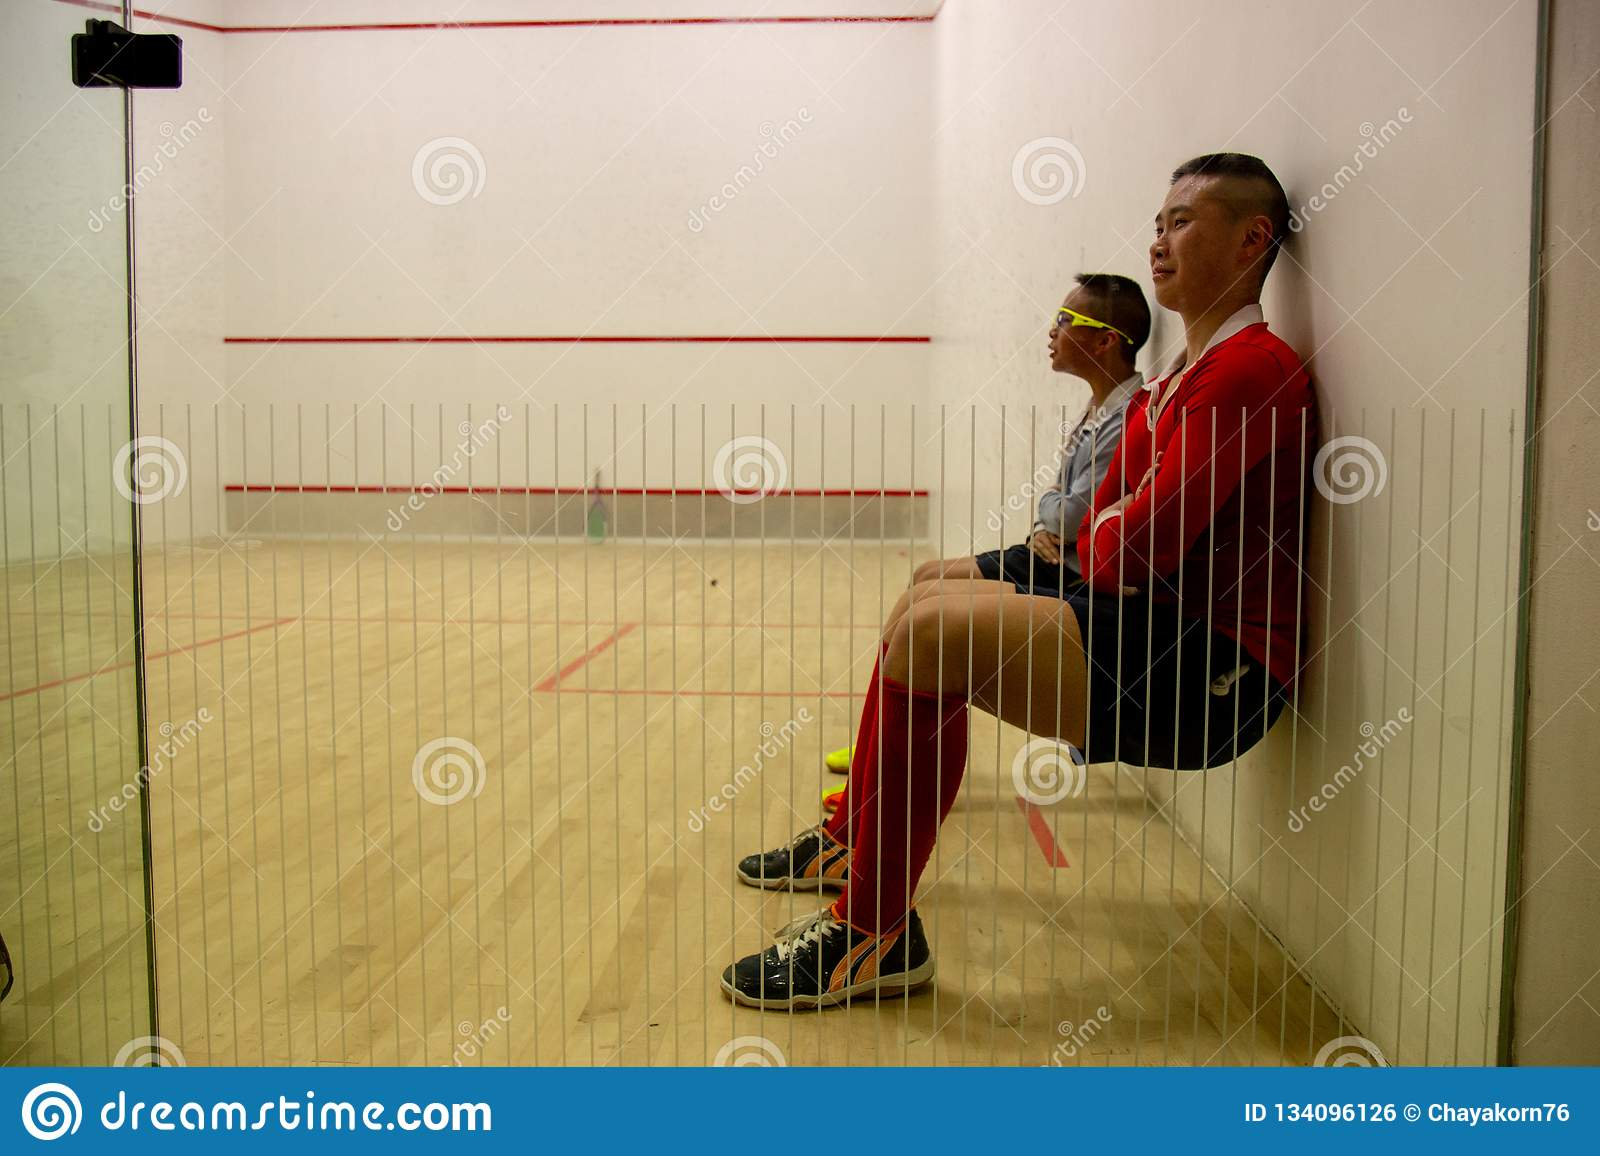 Squash Room with training player